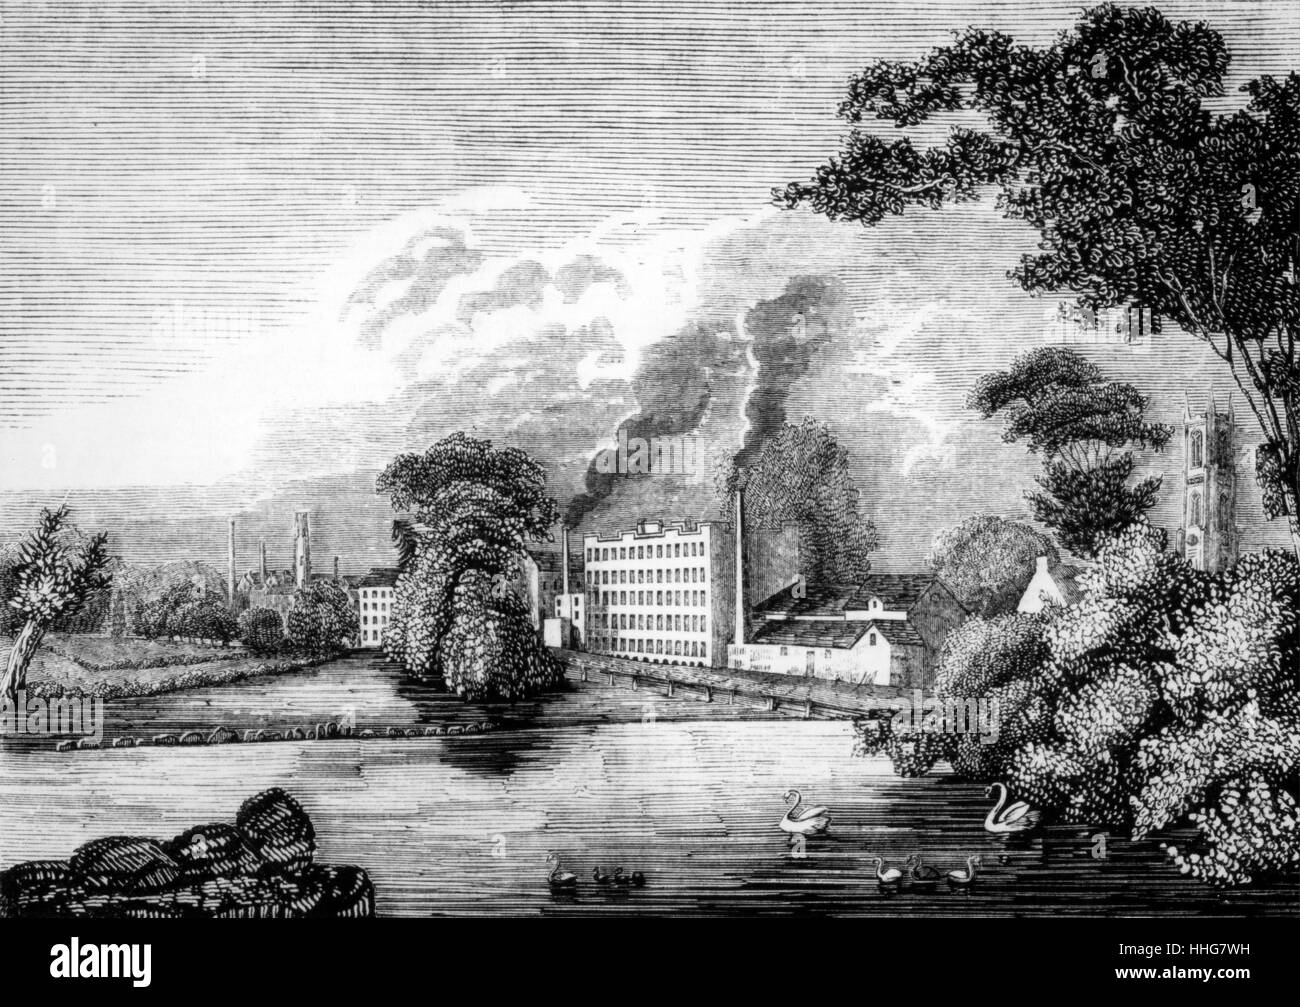 Sir Thomas Lombe's silk mill on the river Derwent at Derby - Stock Image